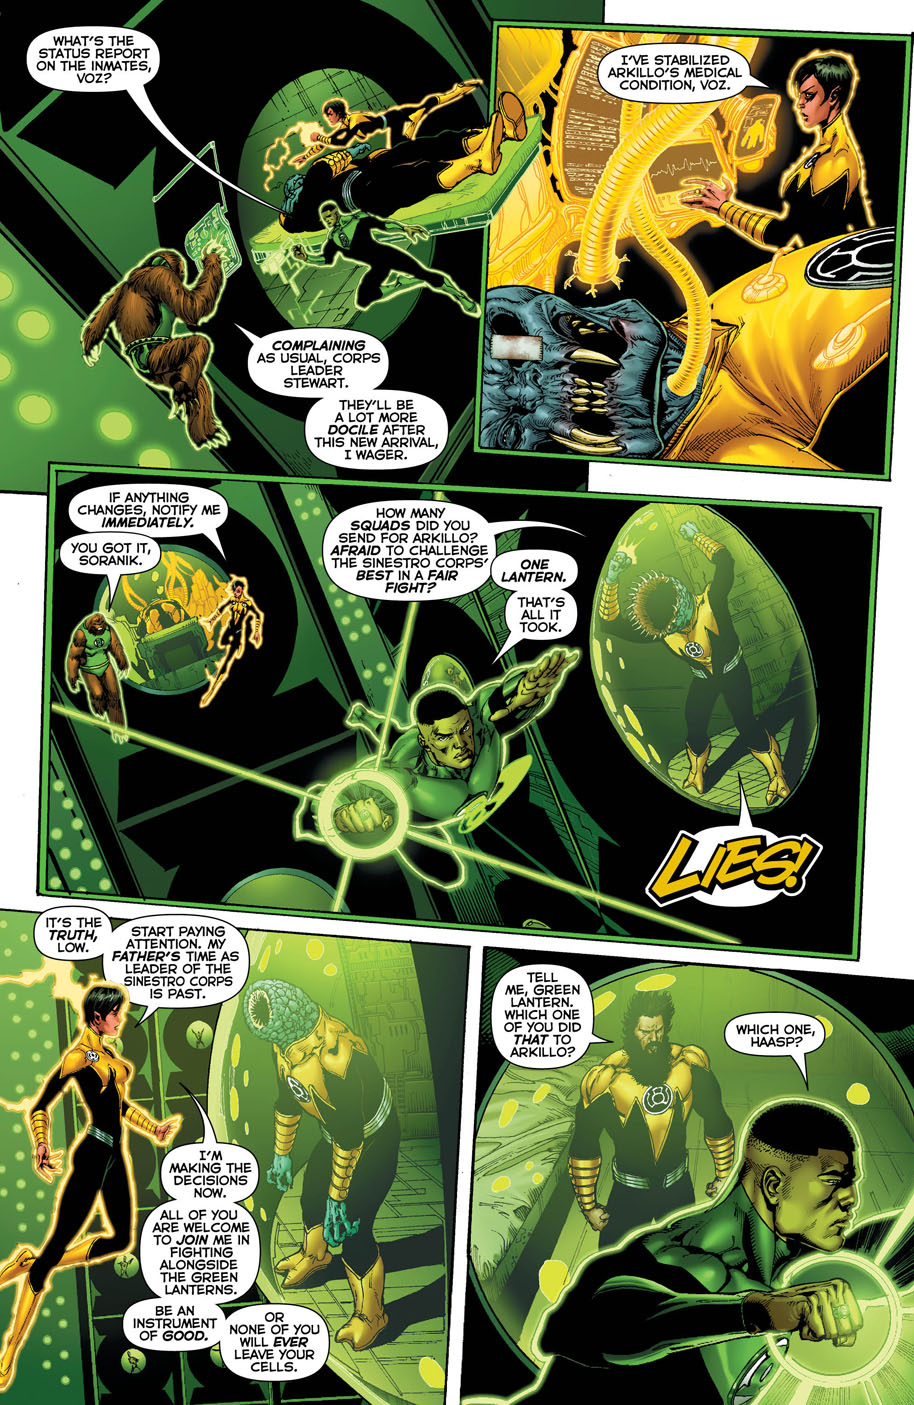 Hal Jordan and the Green Lantern Corps 17 page 2